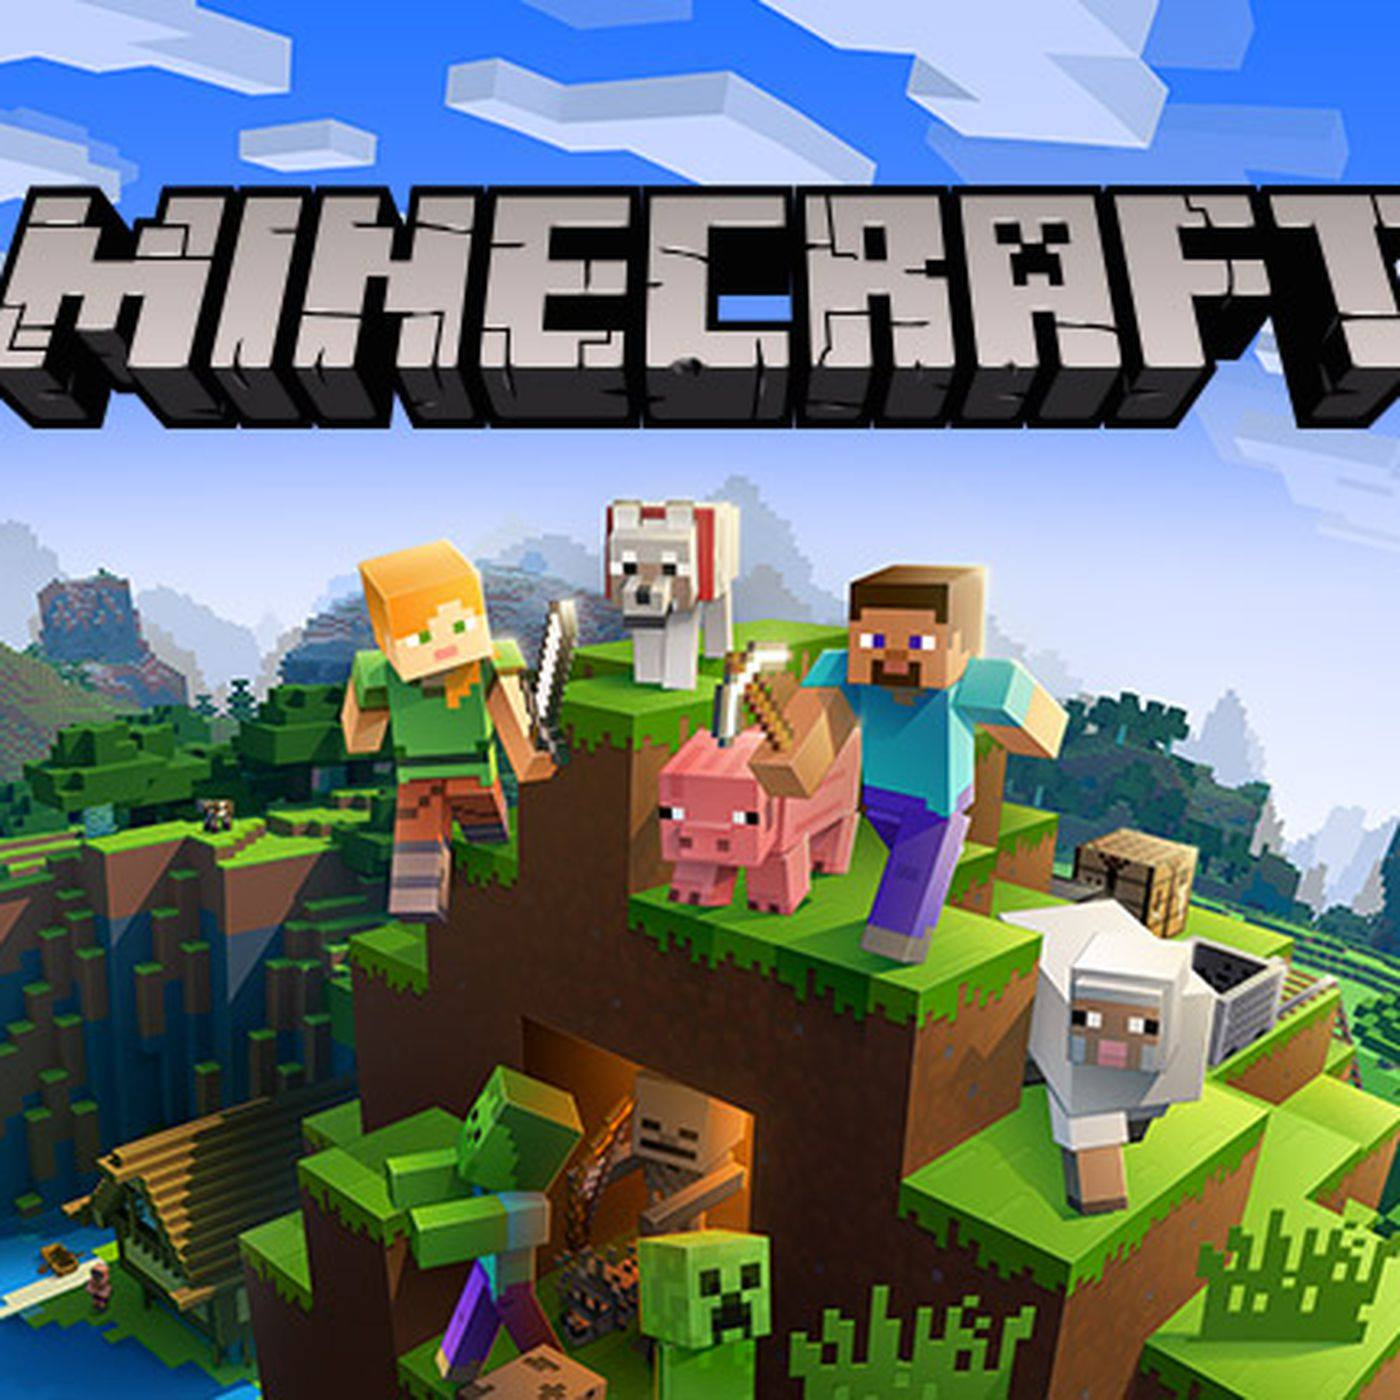 The best selling video game of all time is Minecraft, selling over 200 million copies in less than 10 years. #FunFactFriday